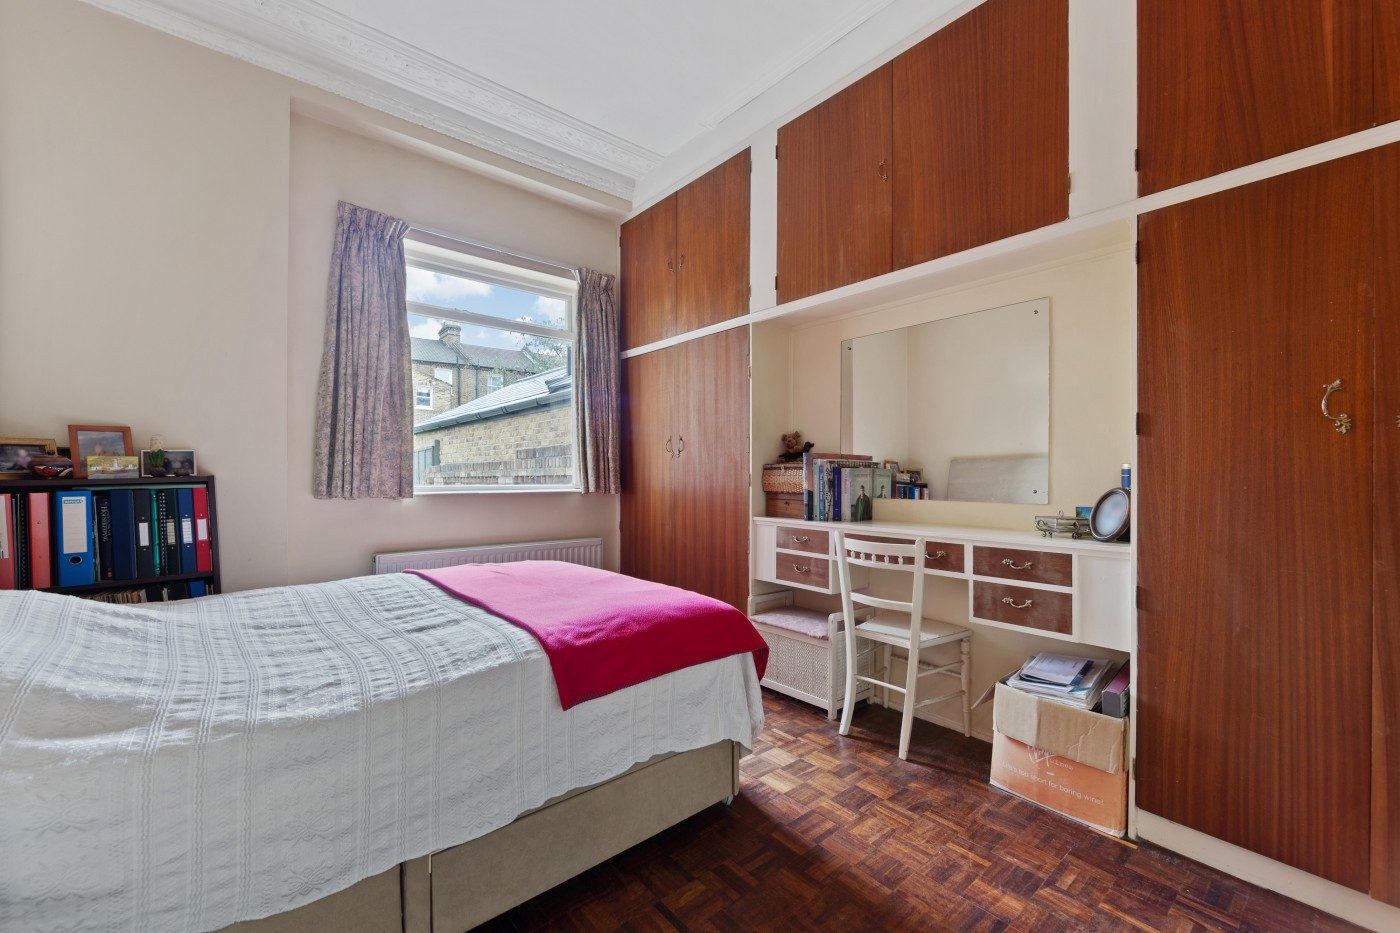 Images for Lorne Road, N4 3RU EAID:931013c273837aec744cf2e7889cb460 BID:1